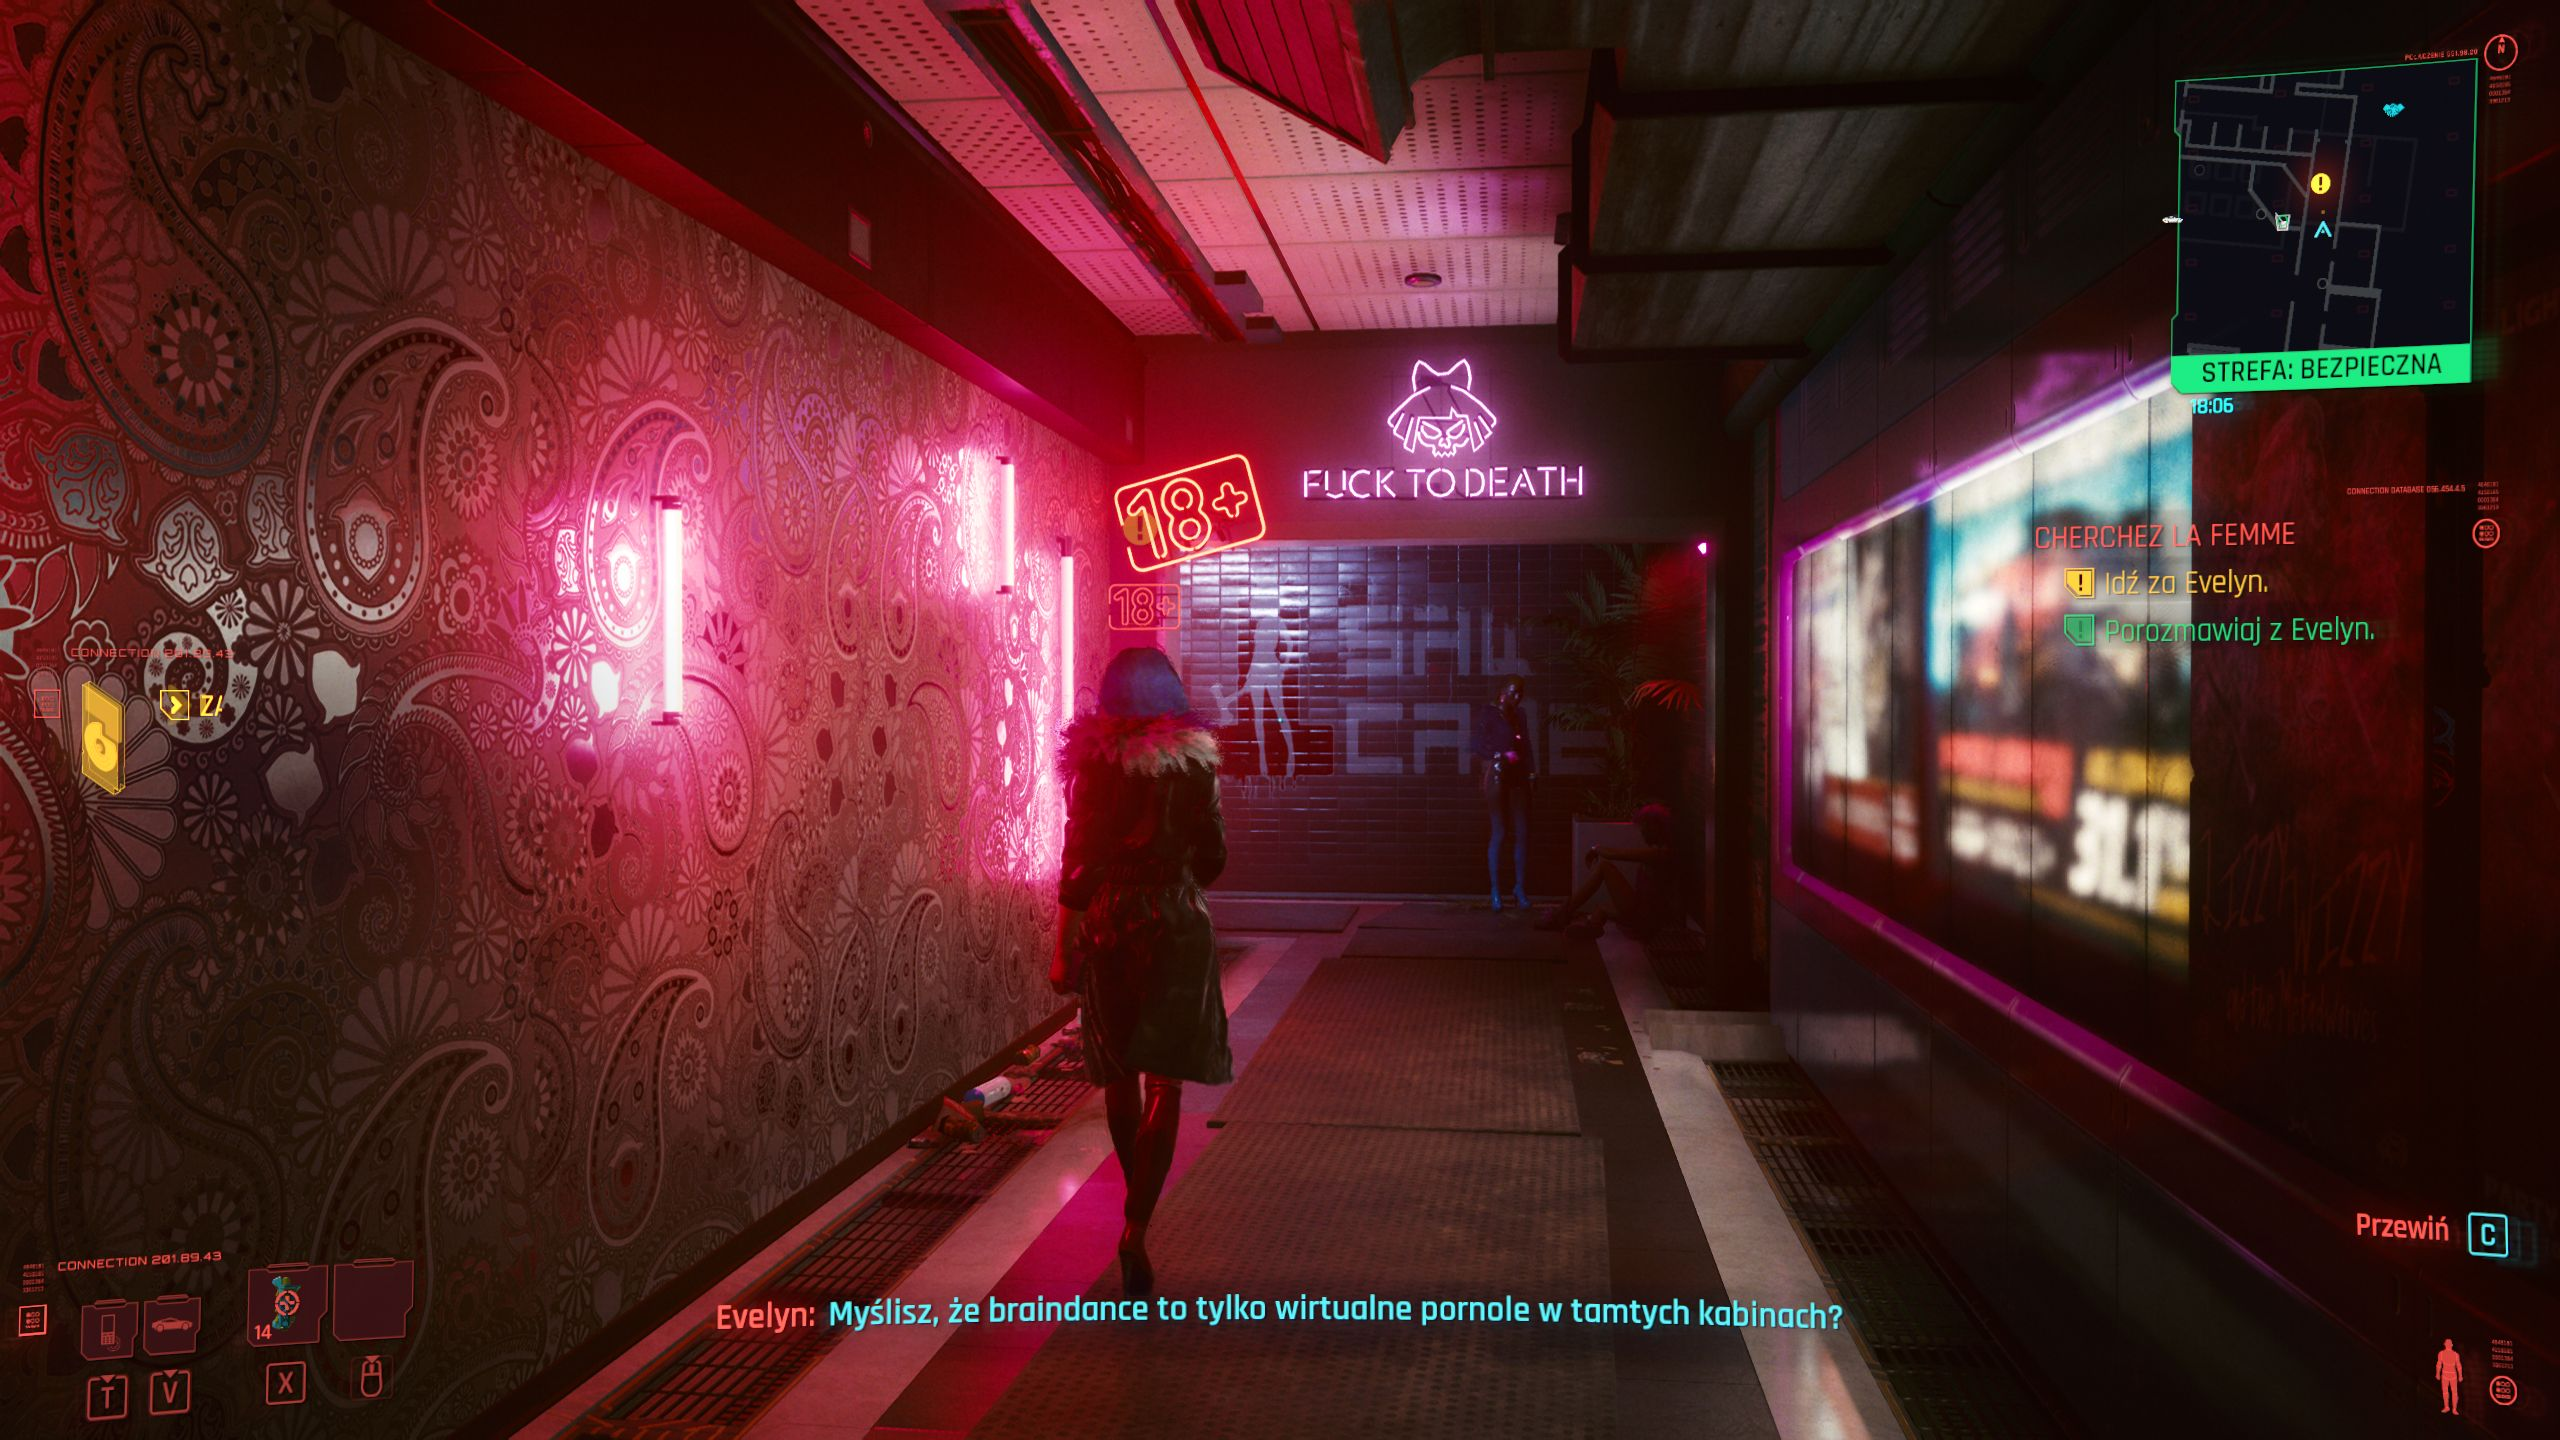 Cyberpunk_2077_C_2020_by_CD_Projekt_RED_13.12.2020_01_41_33_P